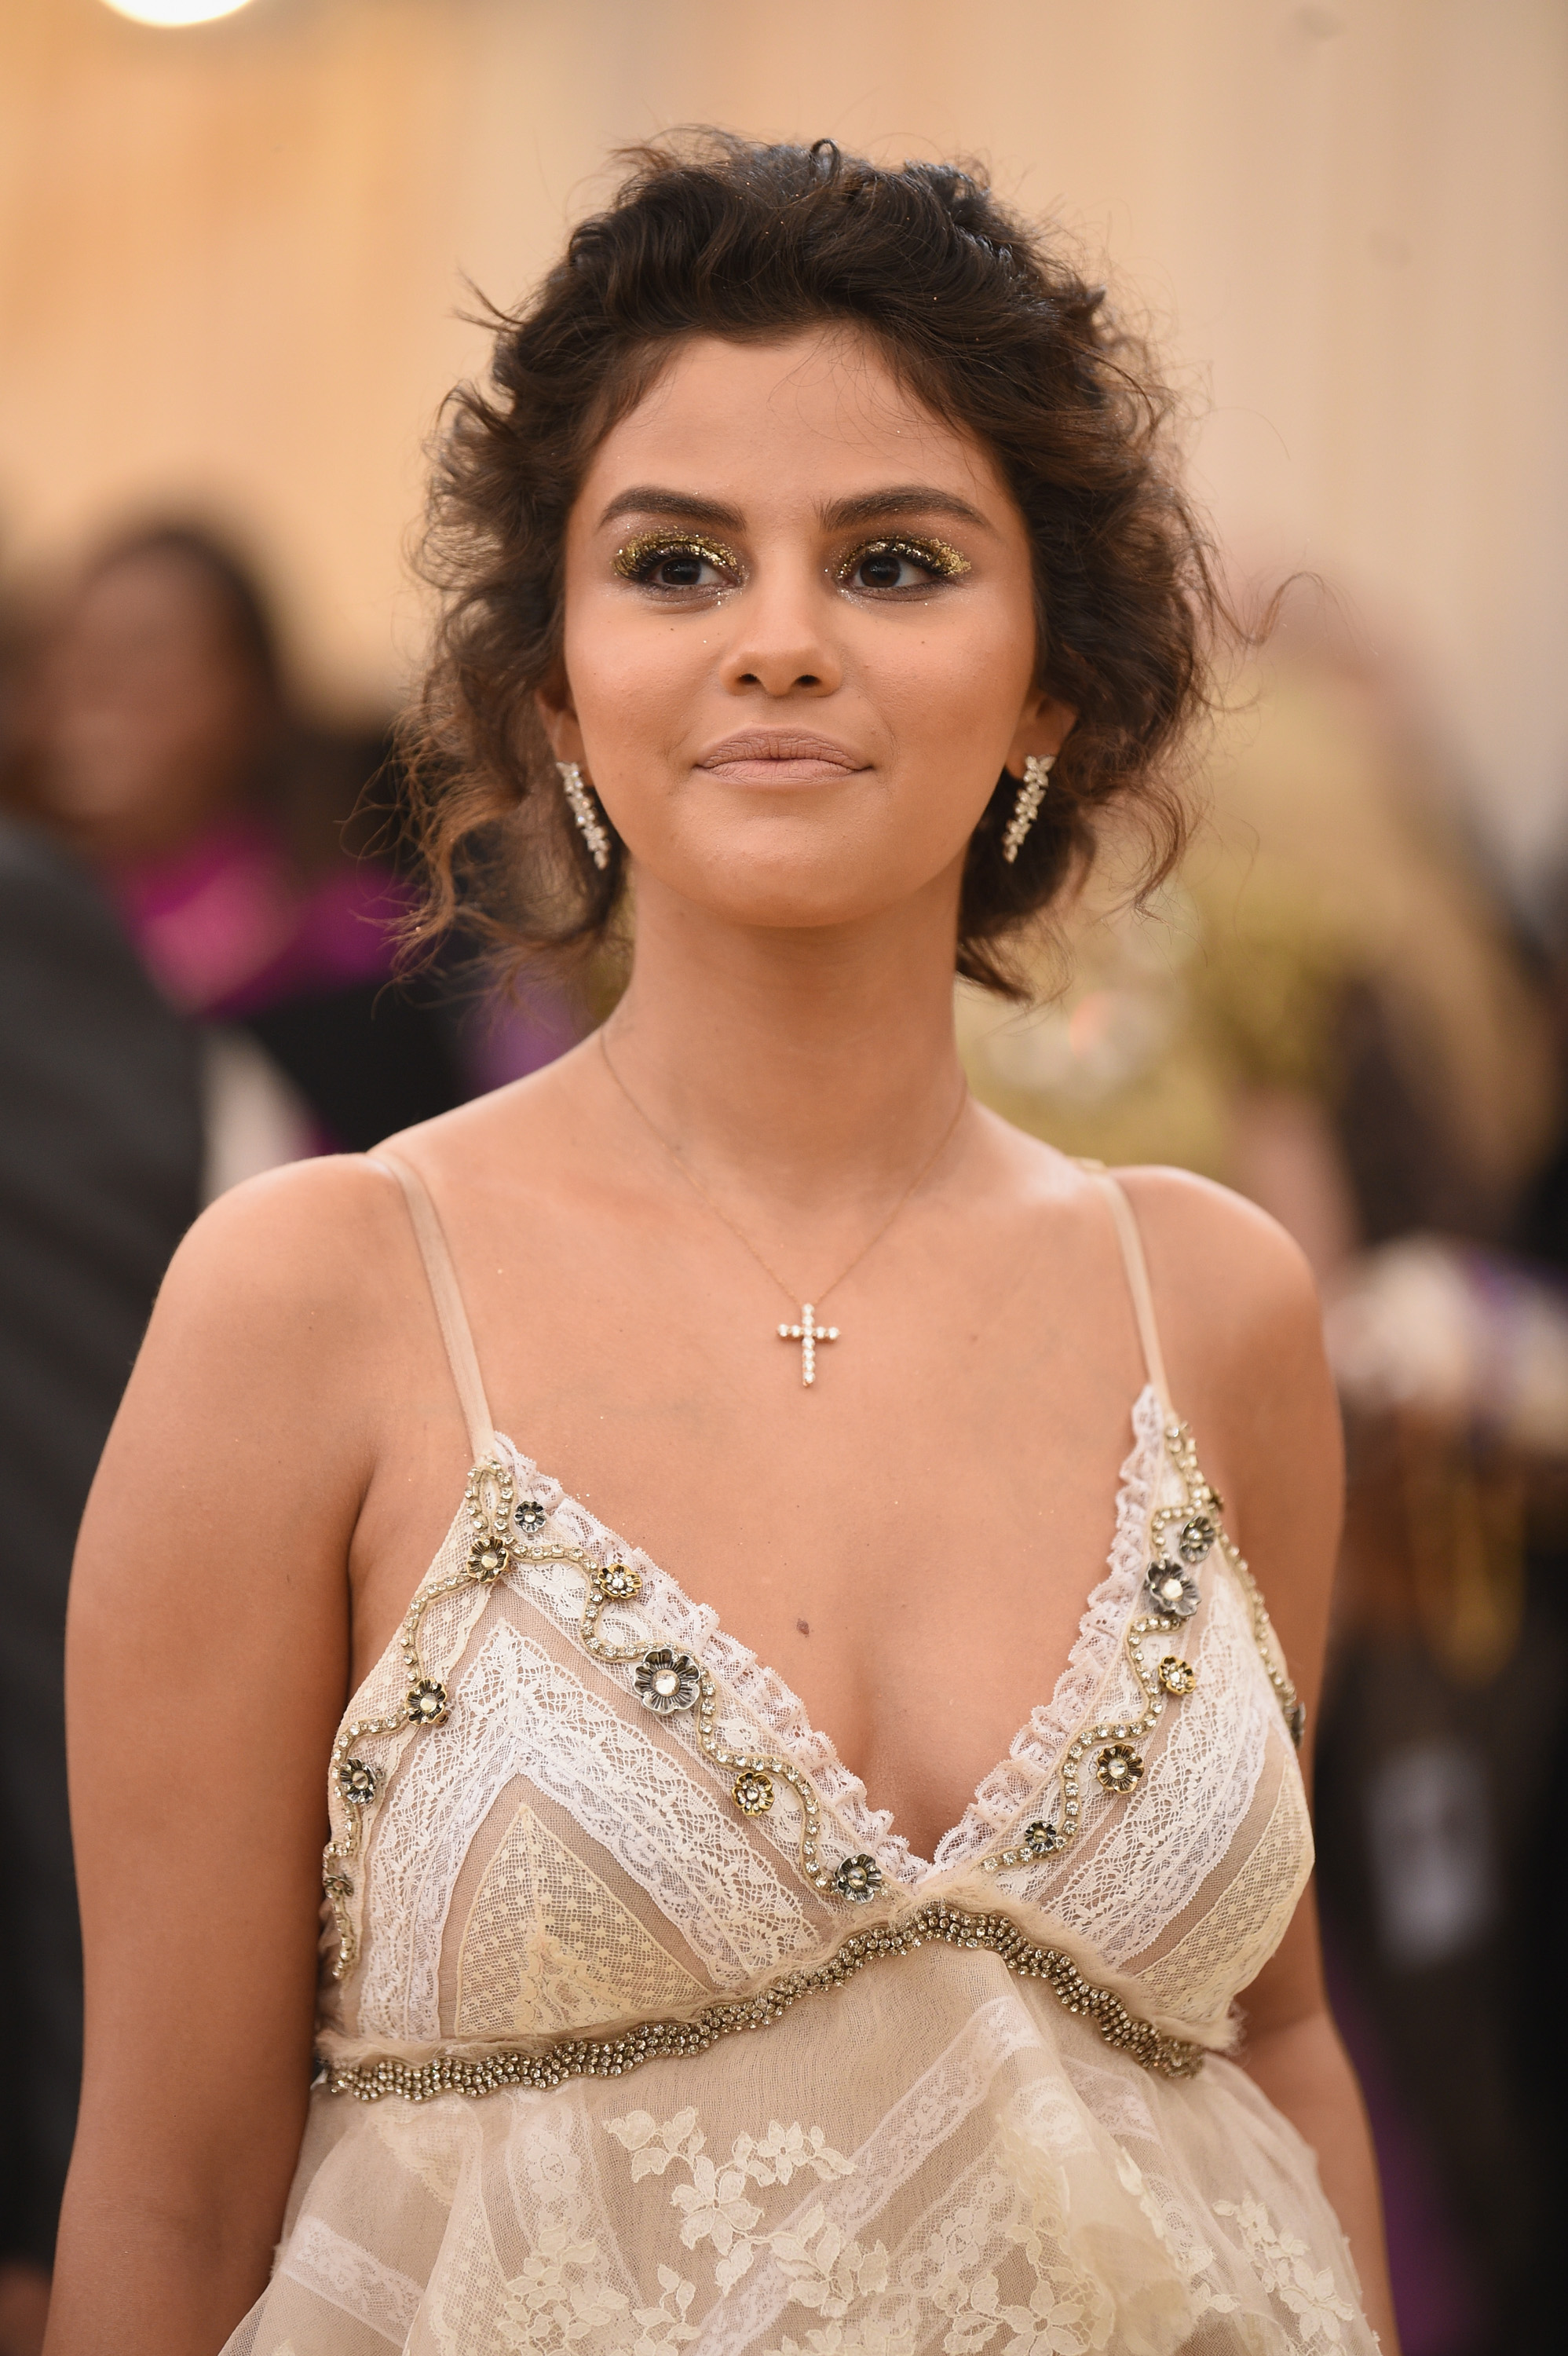 selena gomez boobs Selena Gomez flashes her side-boob as she ditches her bra ...